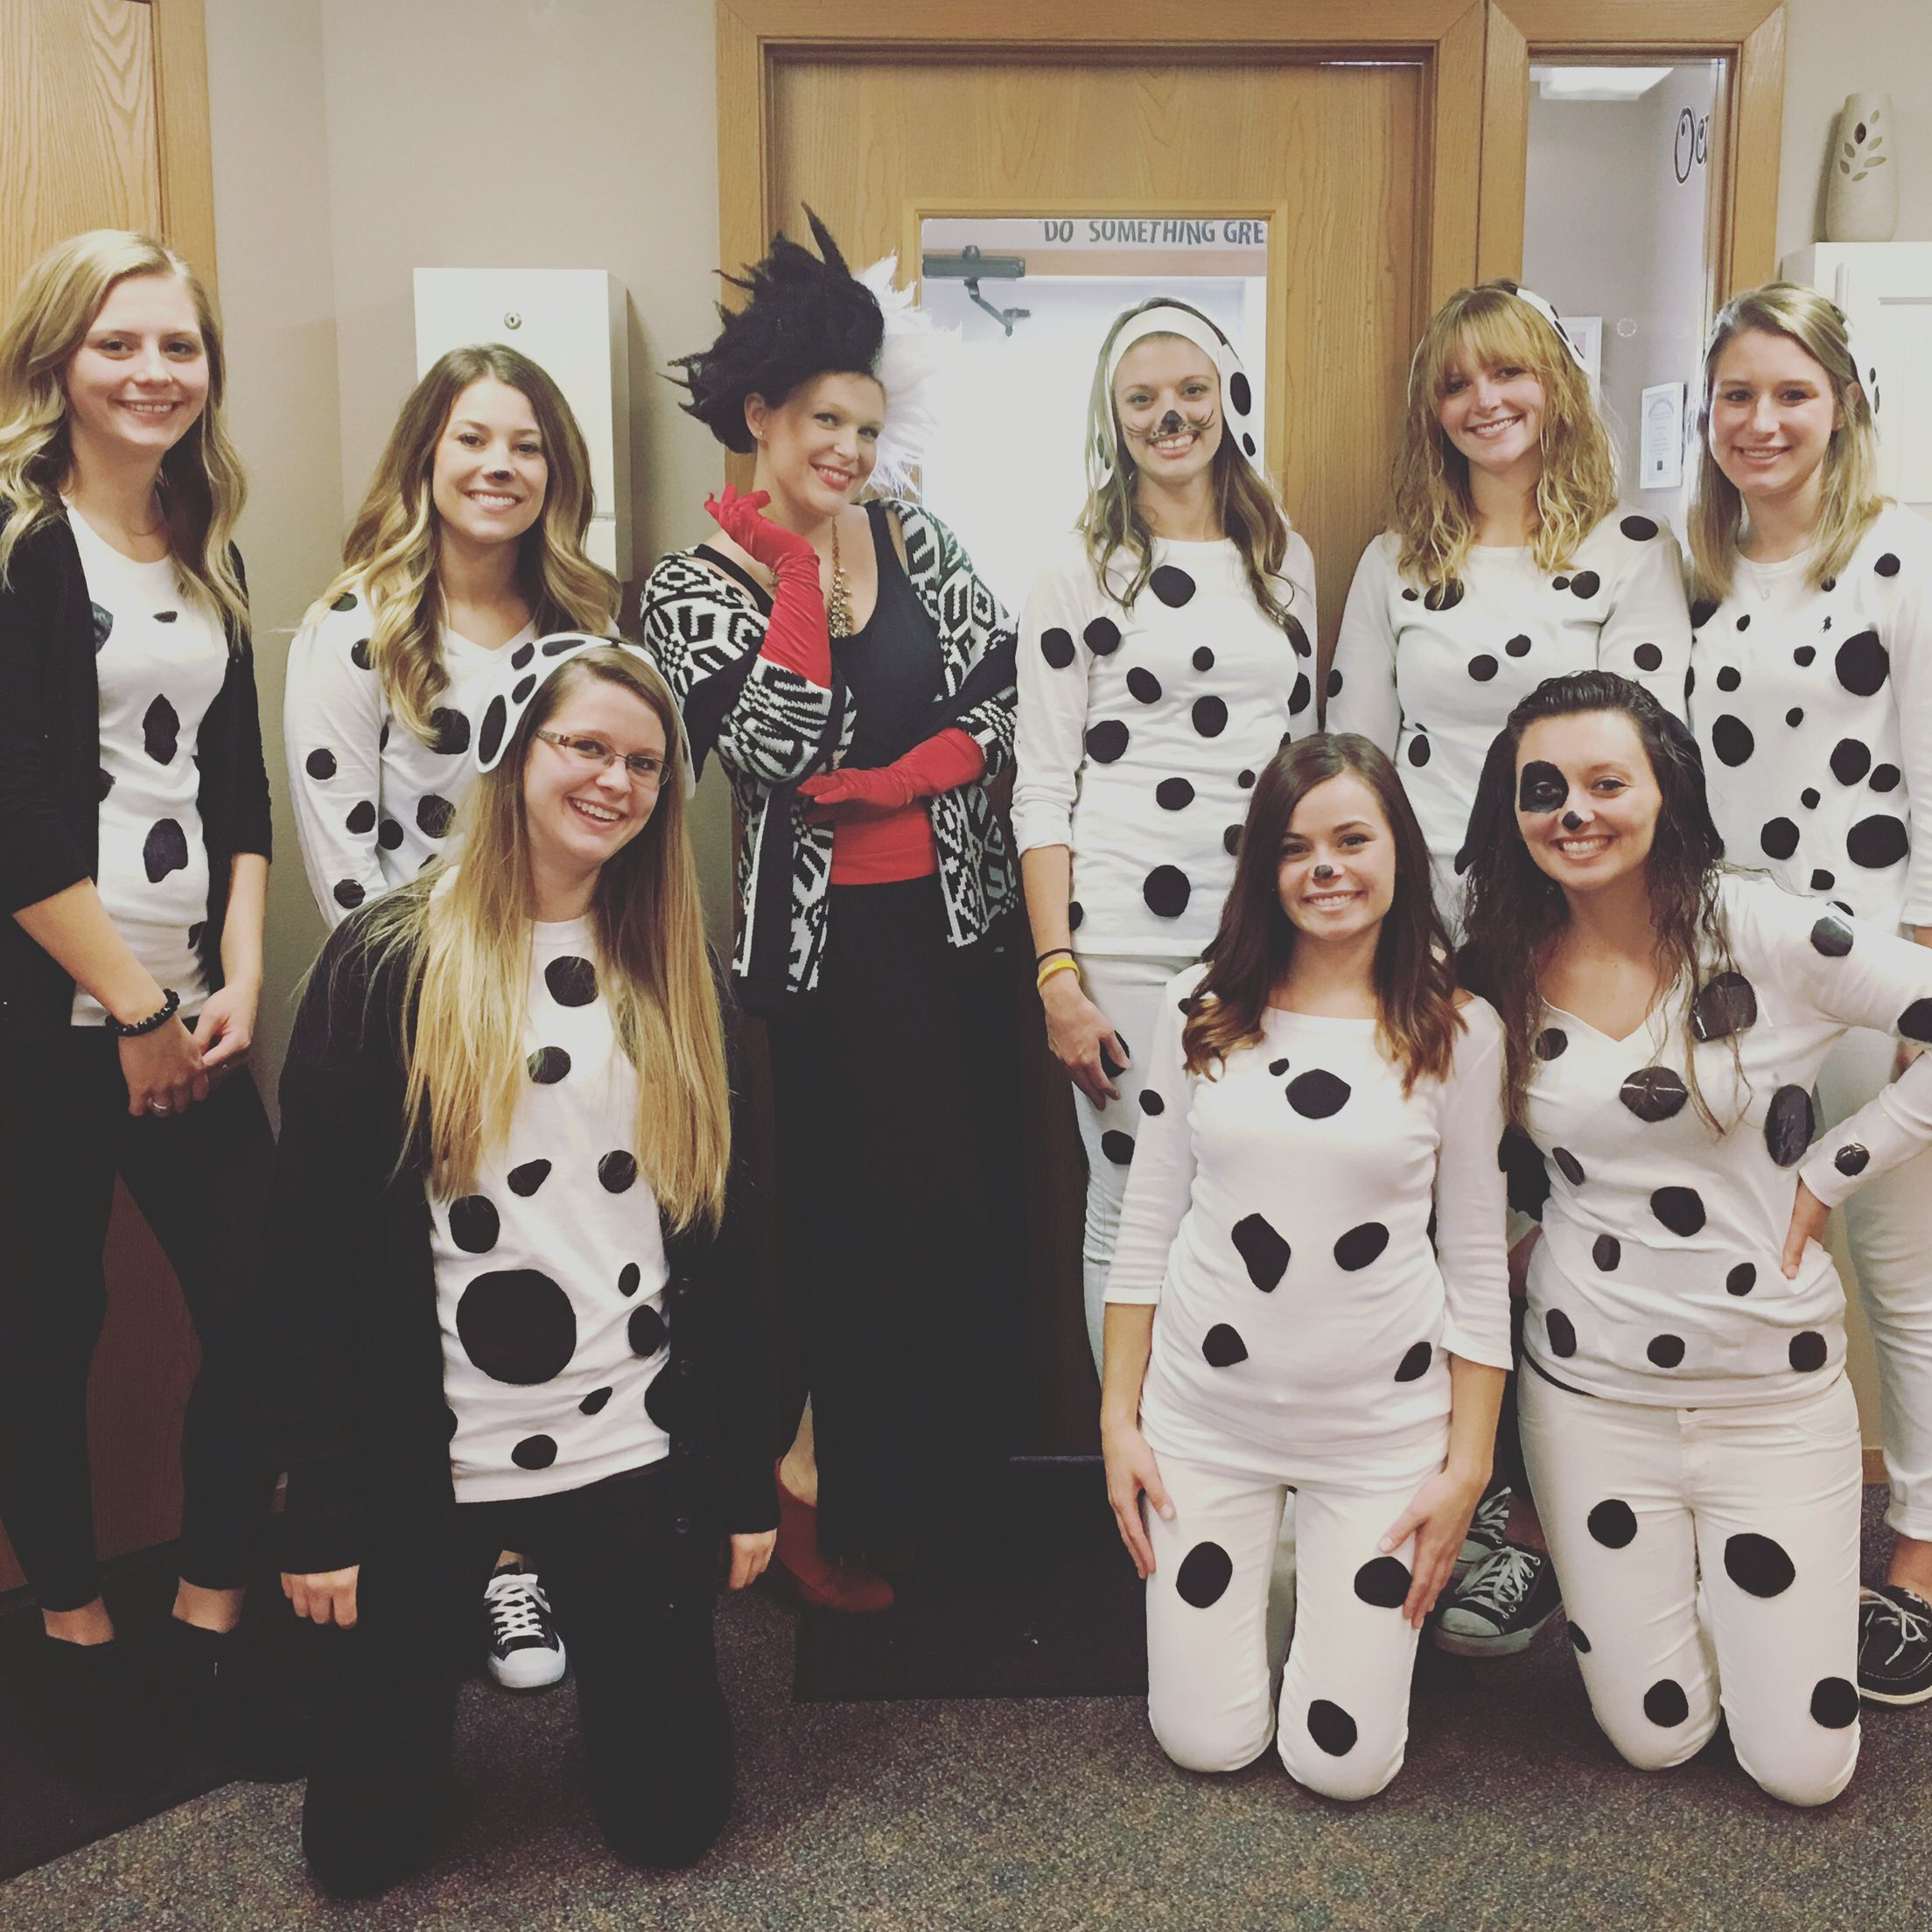 101 Dalmation group costume Office halloween costumes